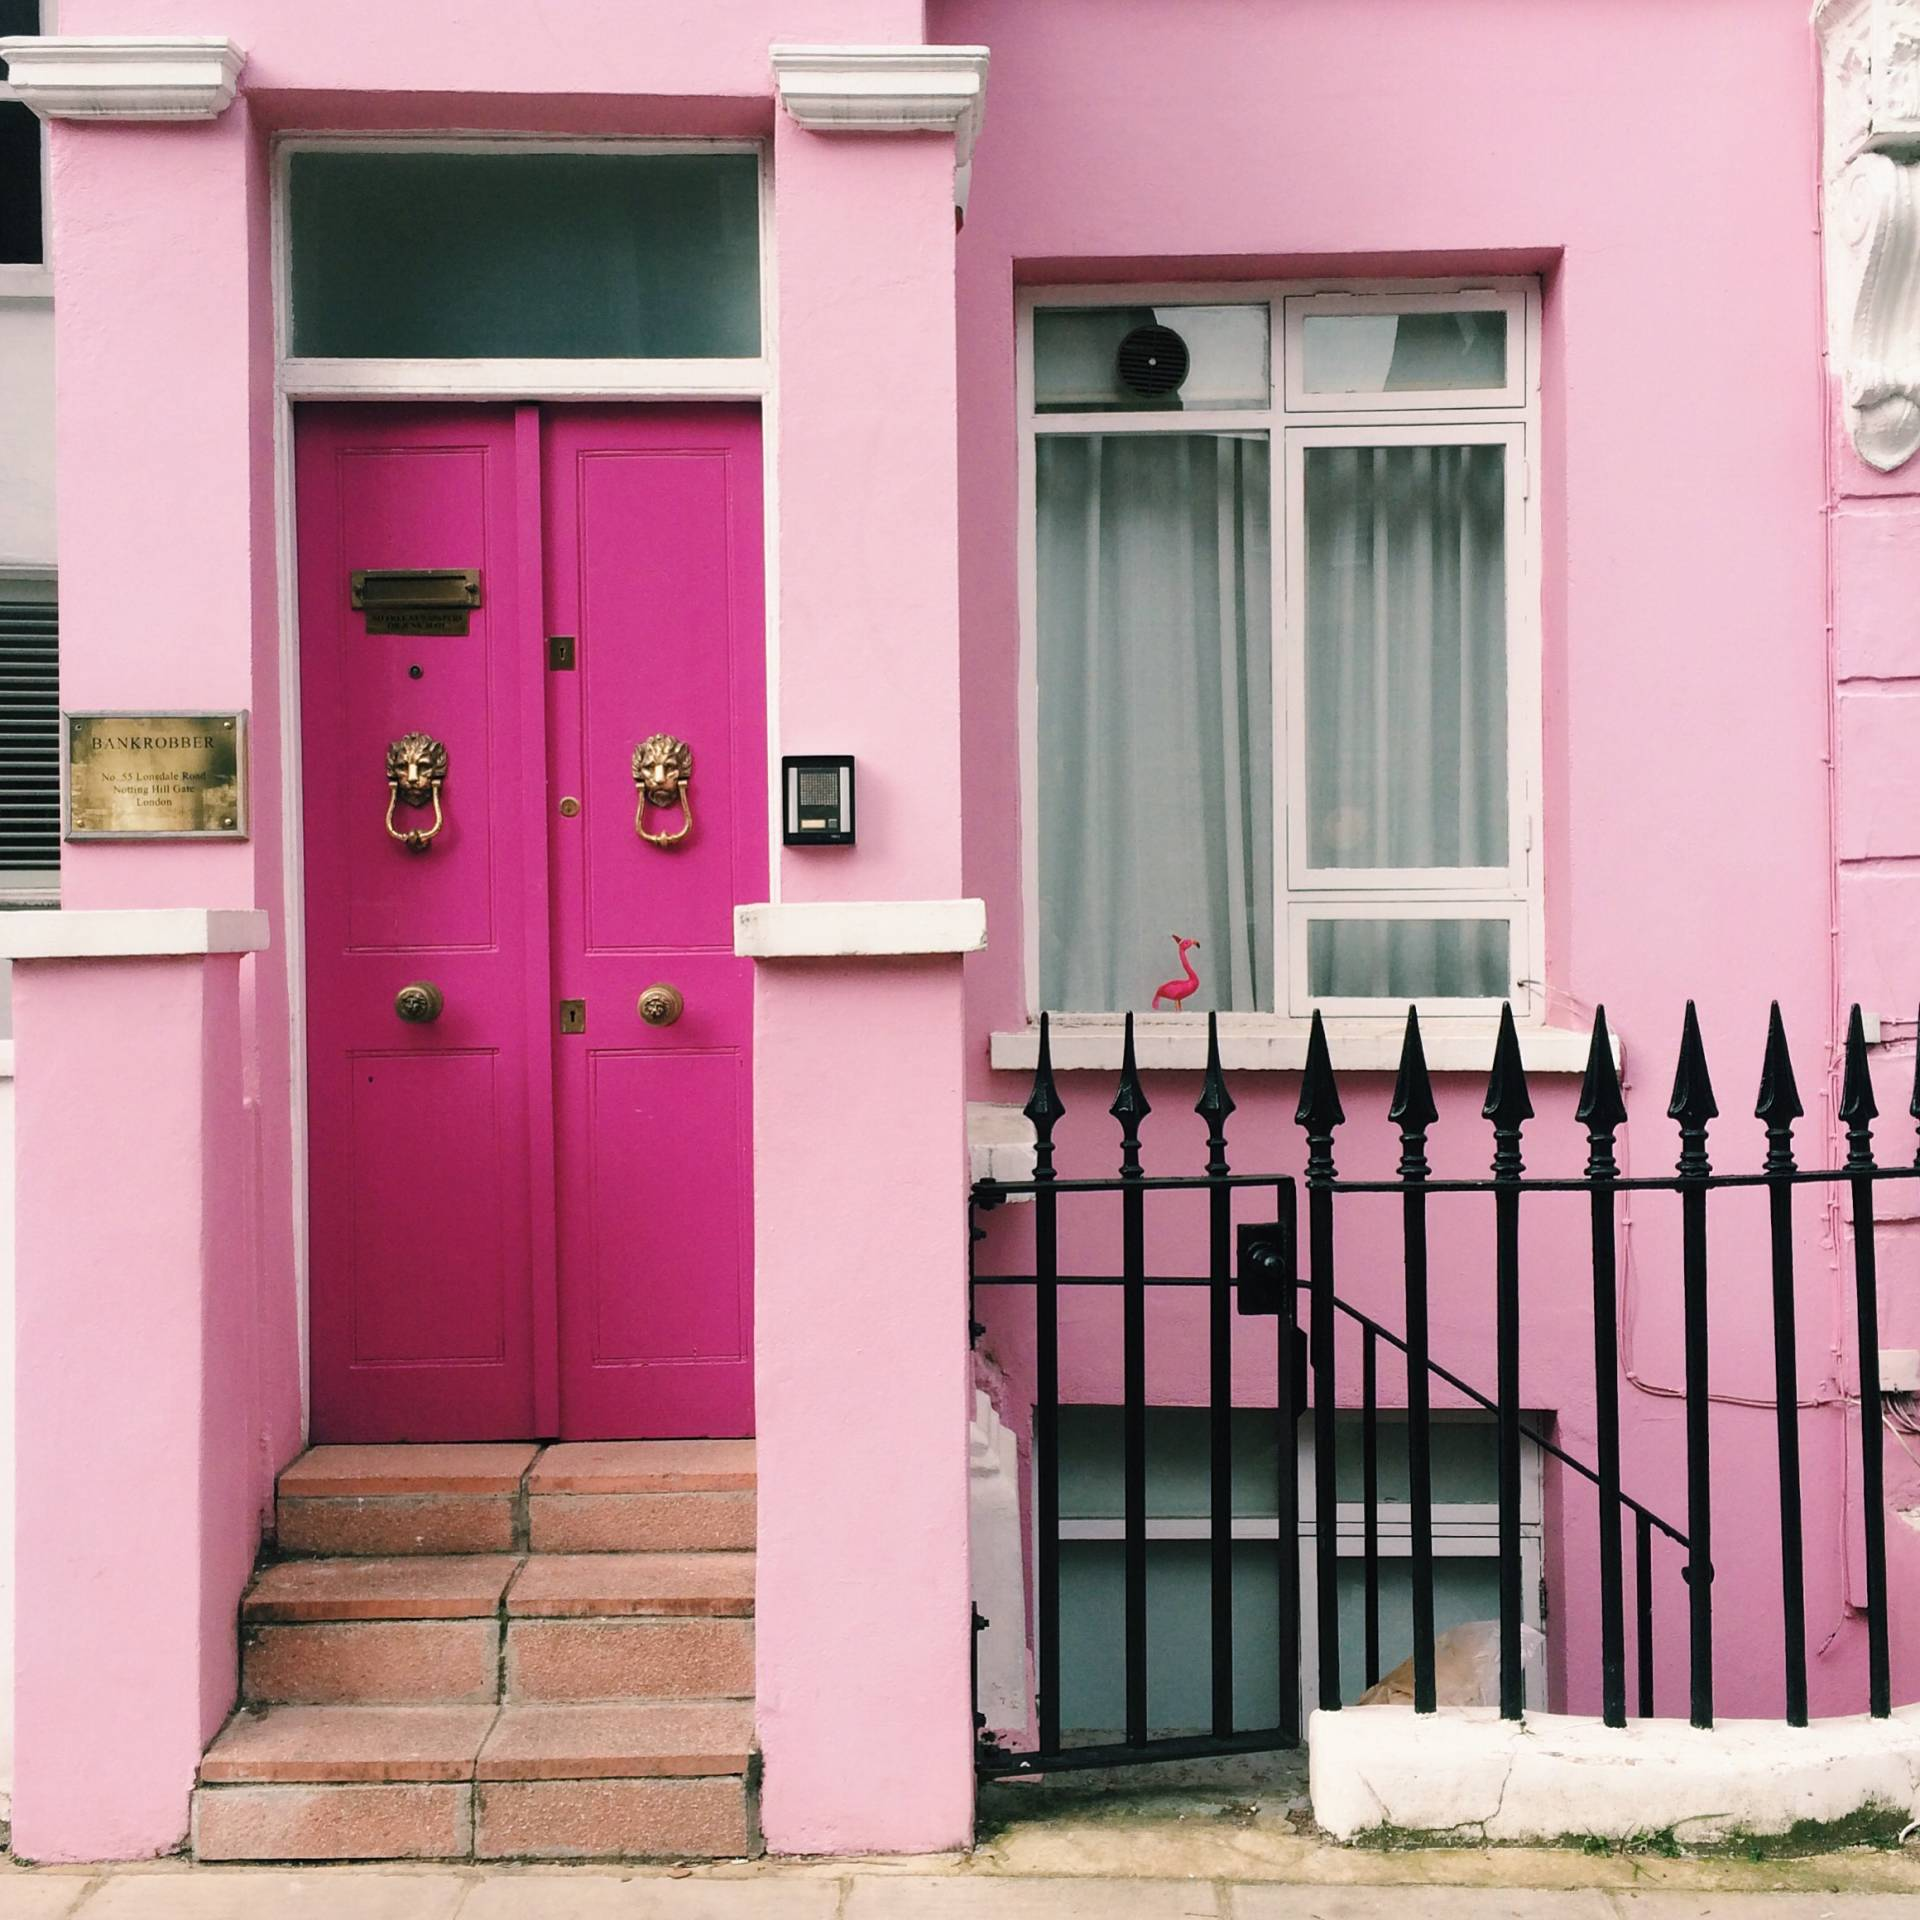 Pink with lions – Lonsdale Road, Notting Hill